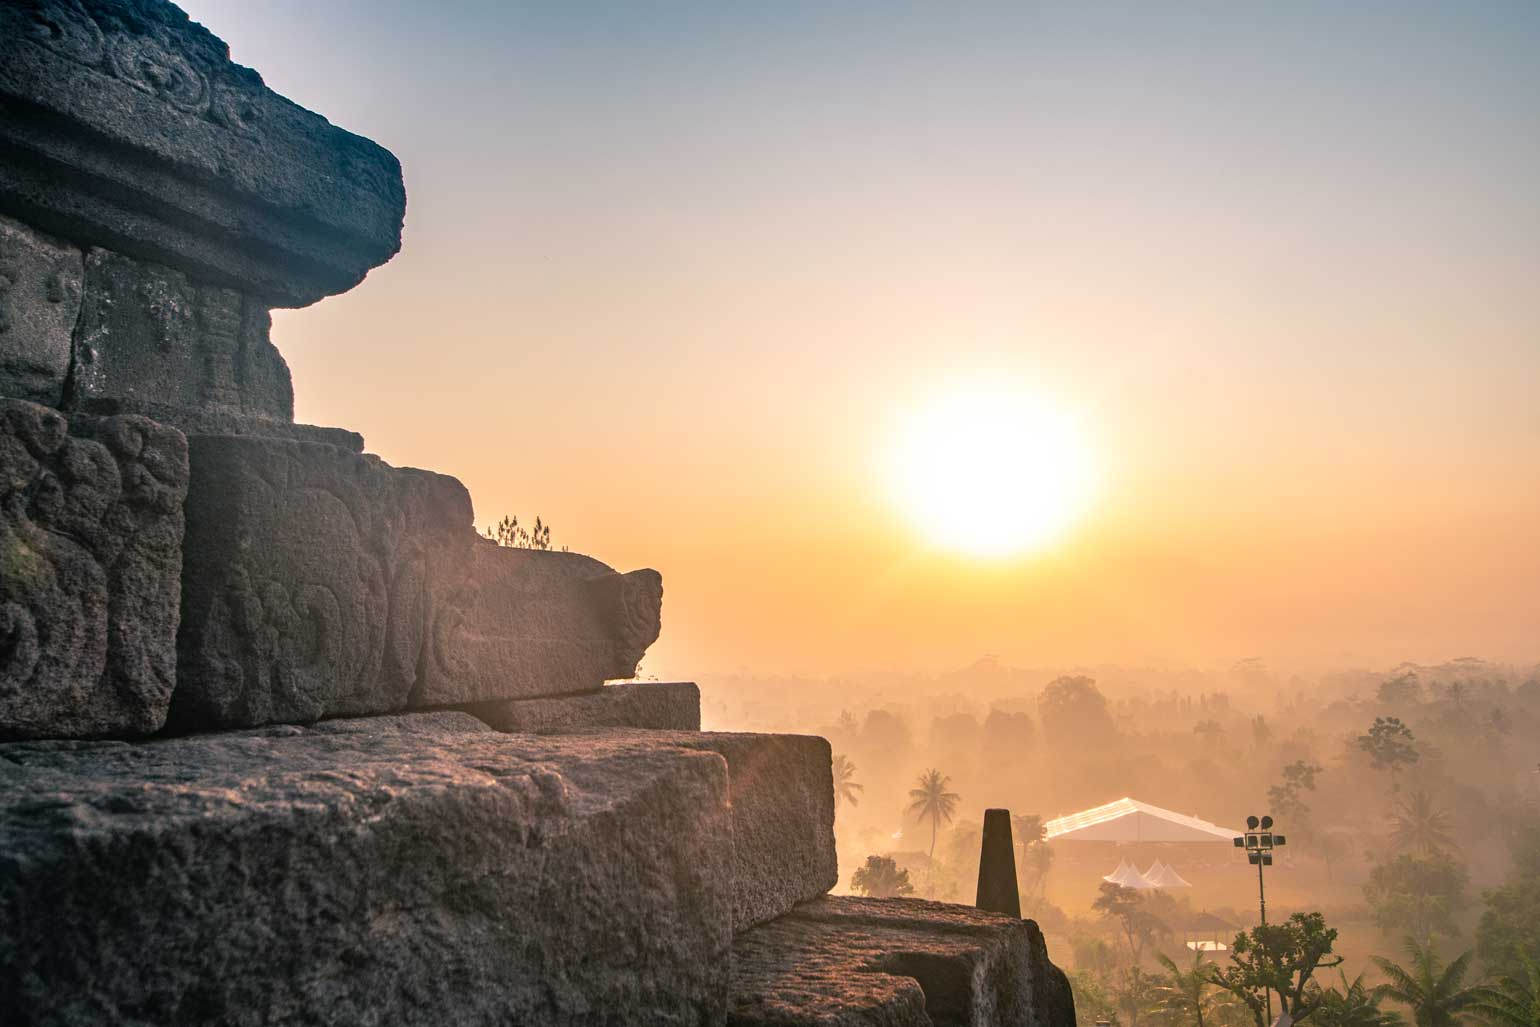 sunrise at Borobudur - panorama